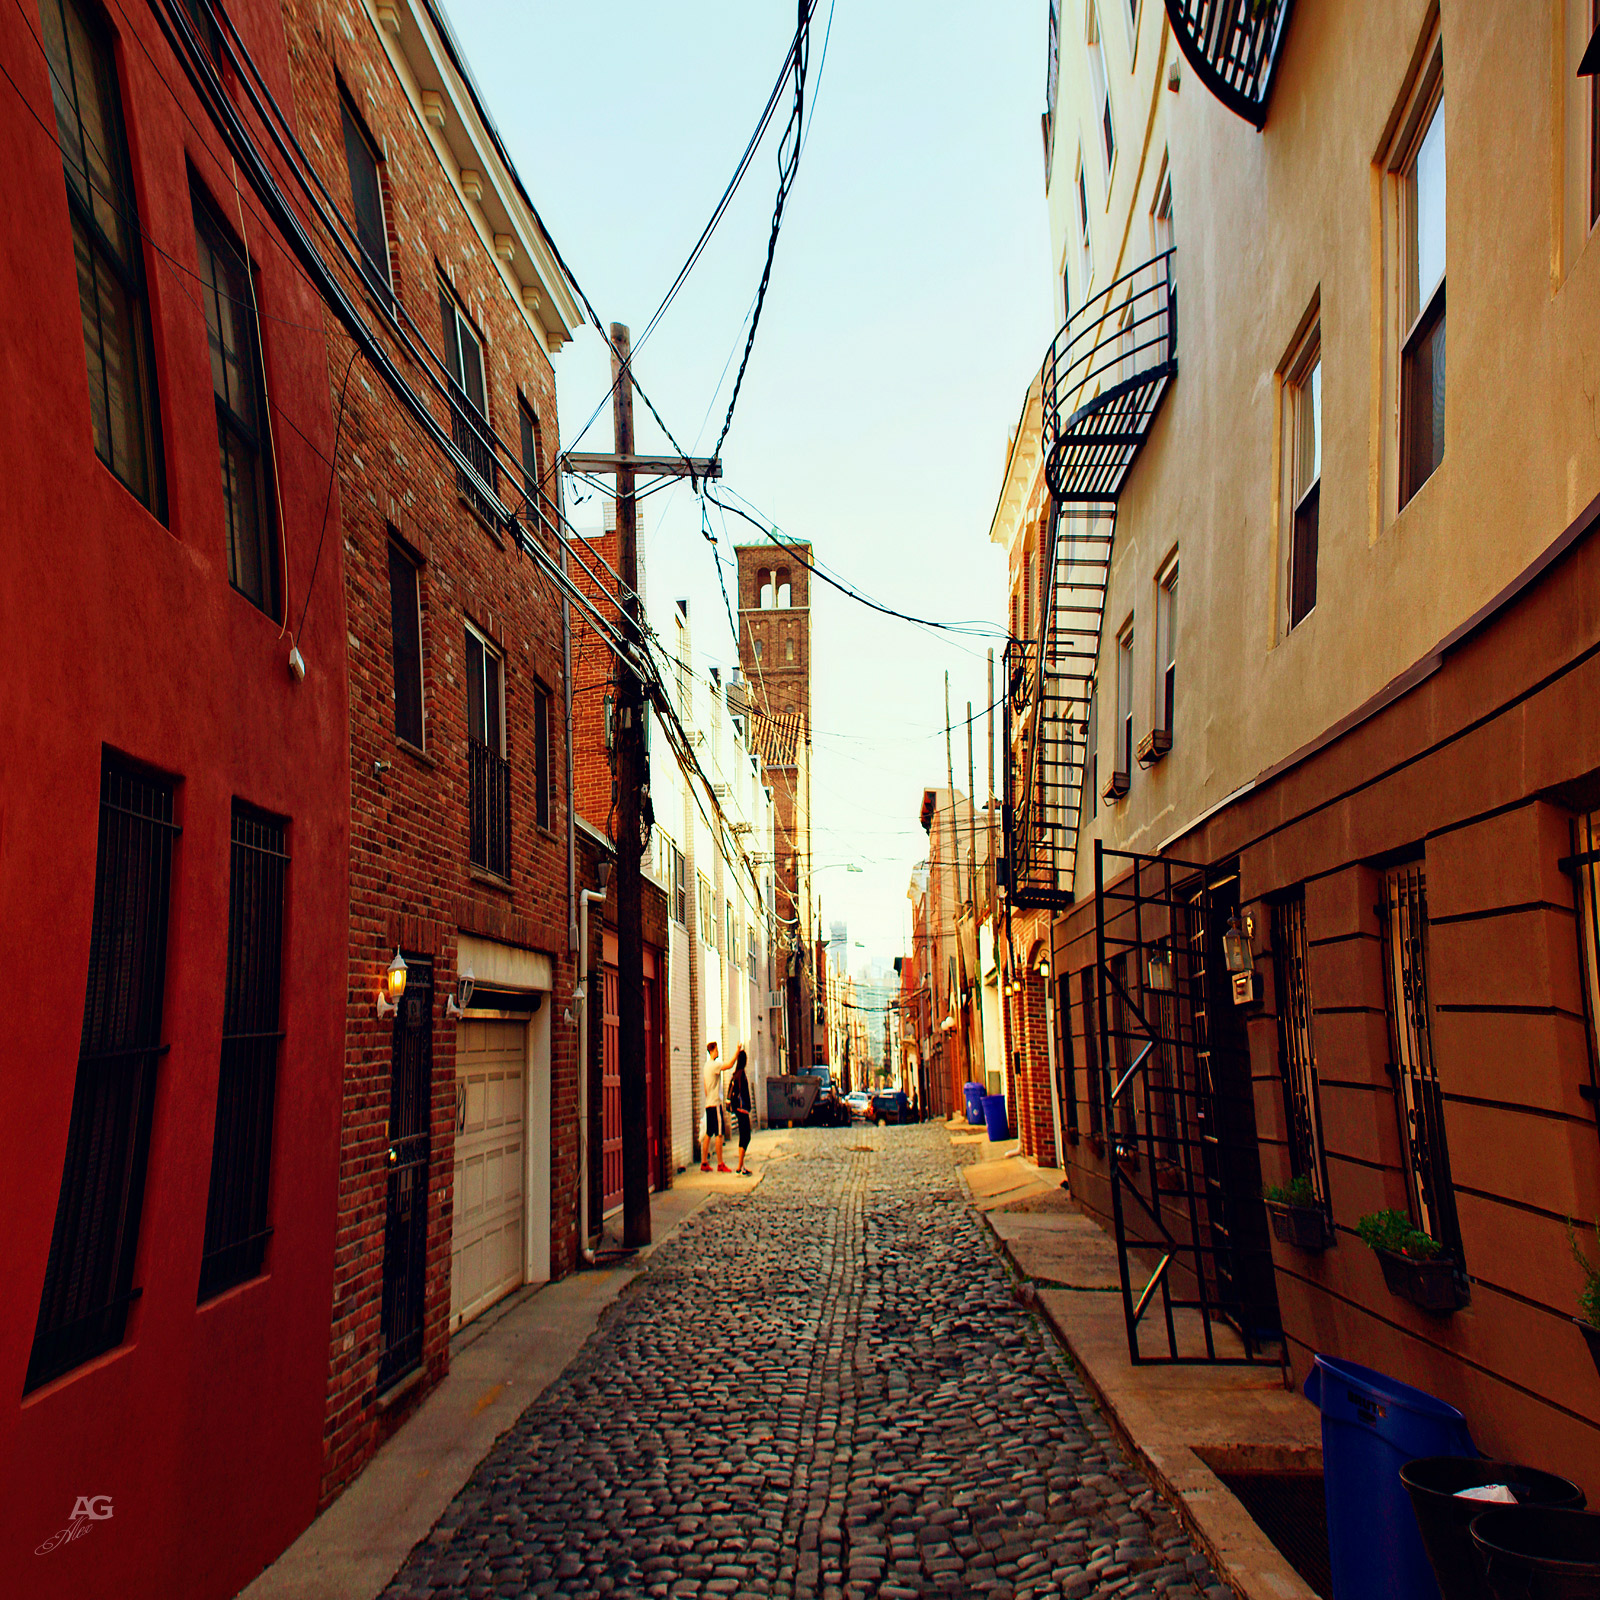 NarrowStreetInHoboken_warped_1600